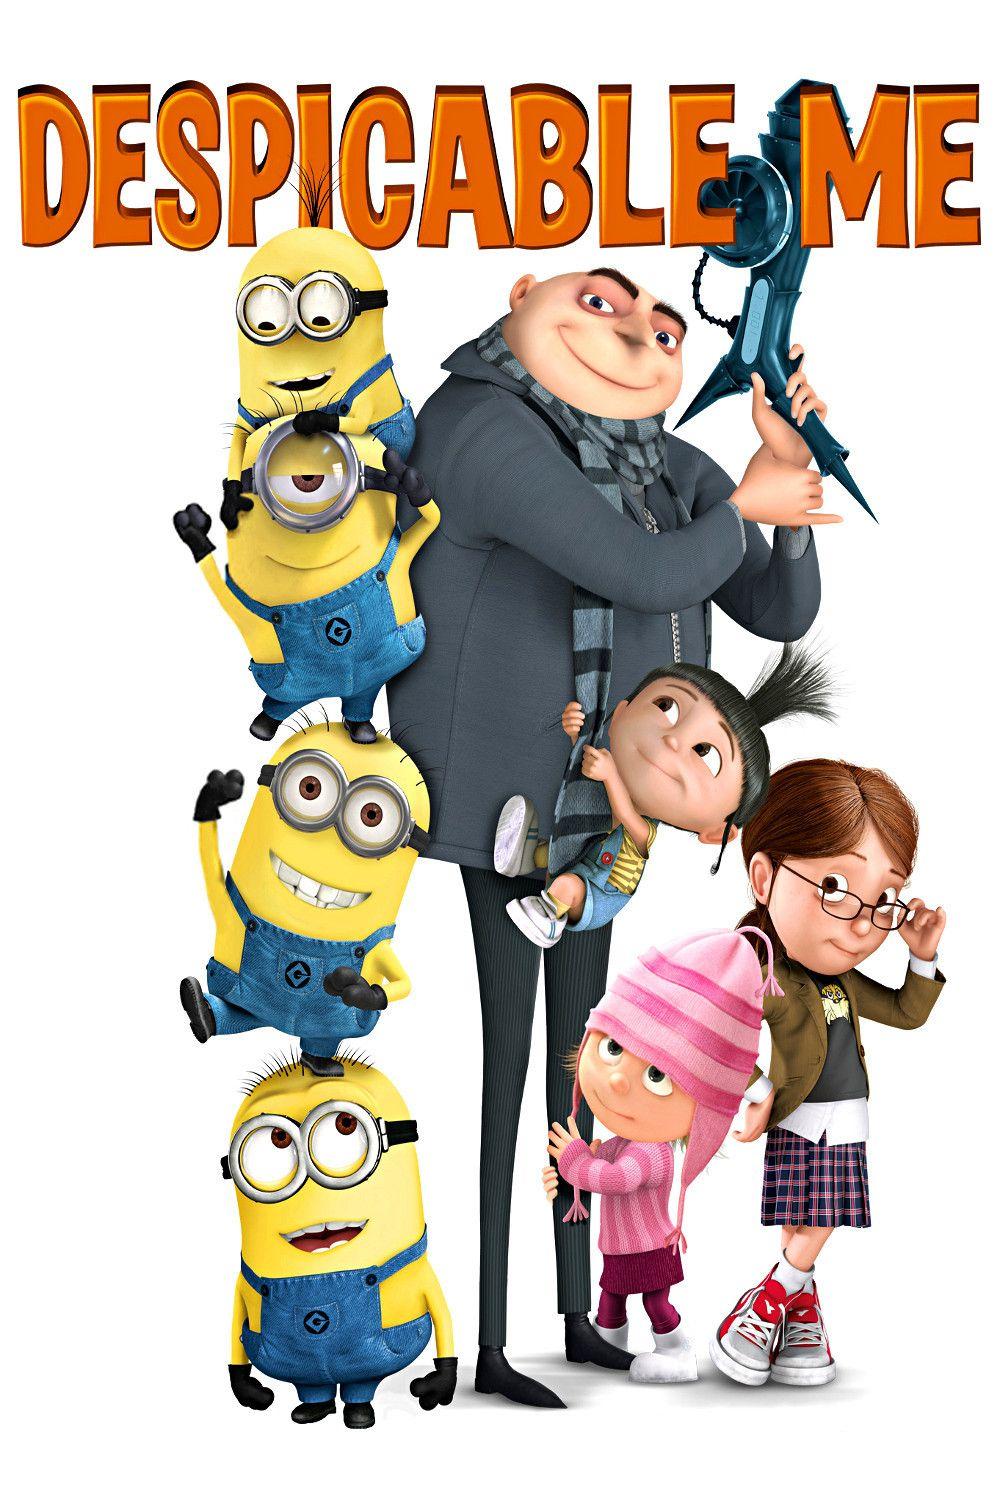 Watch Movie Online Despicable Me Free Download Full HD